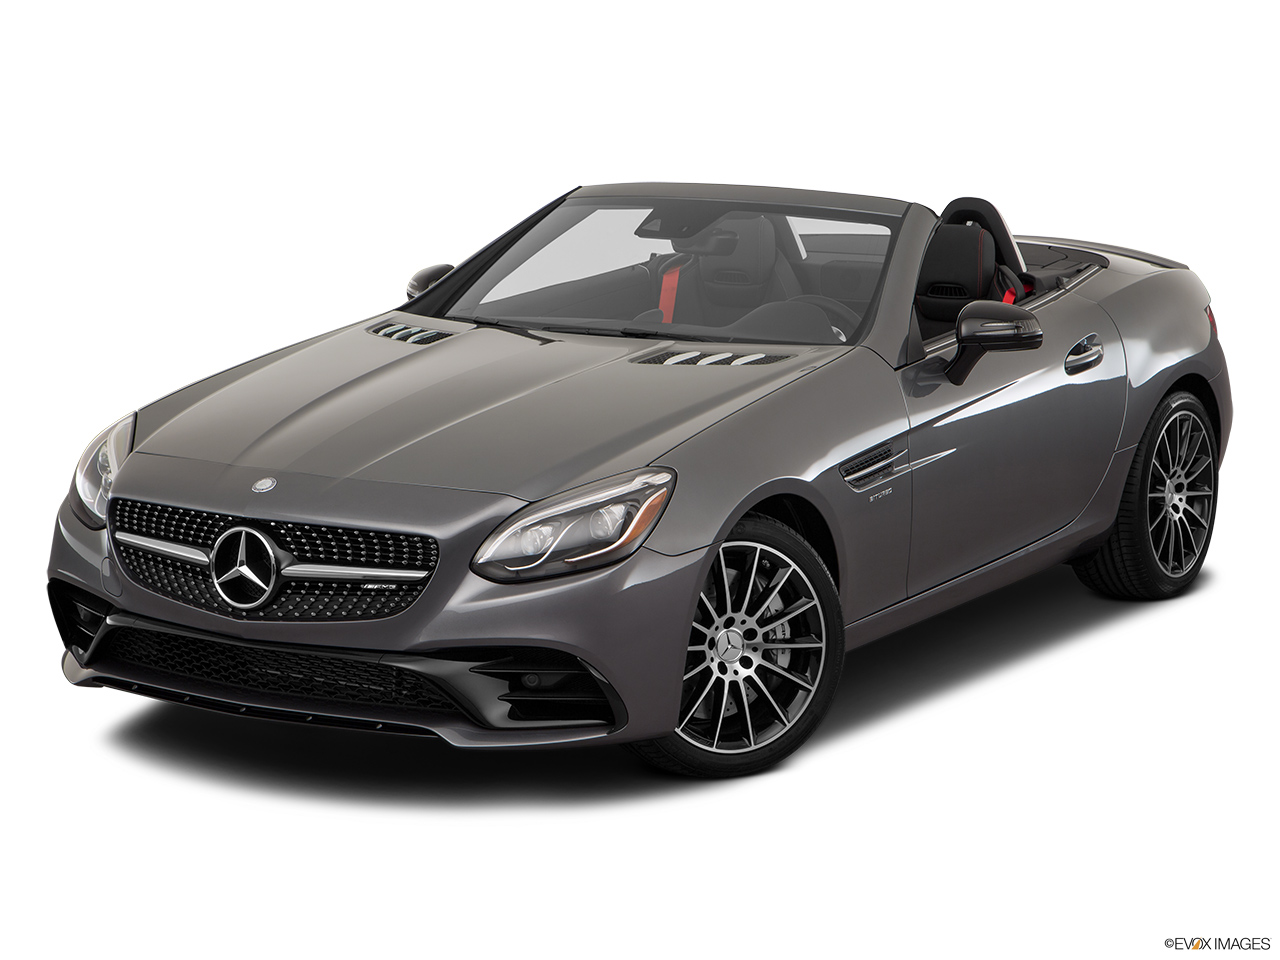 2019 Mercedes-Benz SLC-class SLC43 AMG Front angle view.